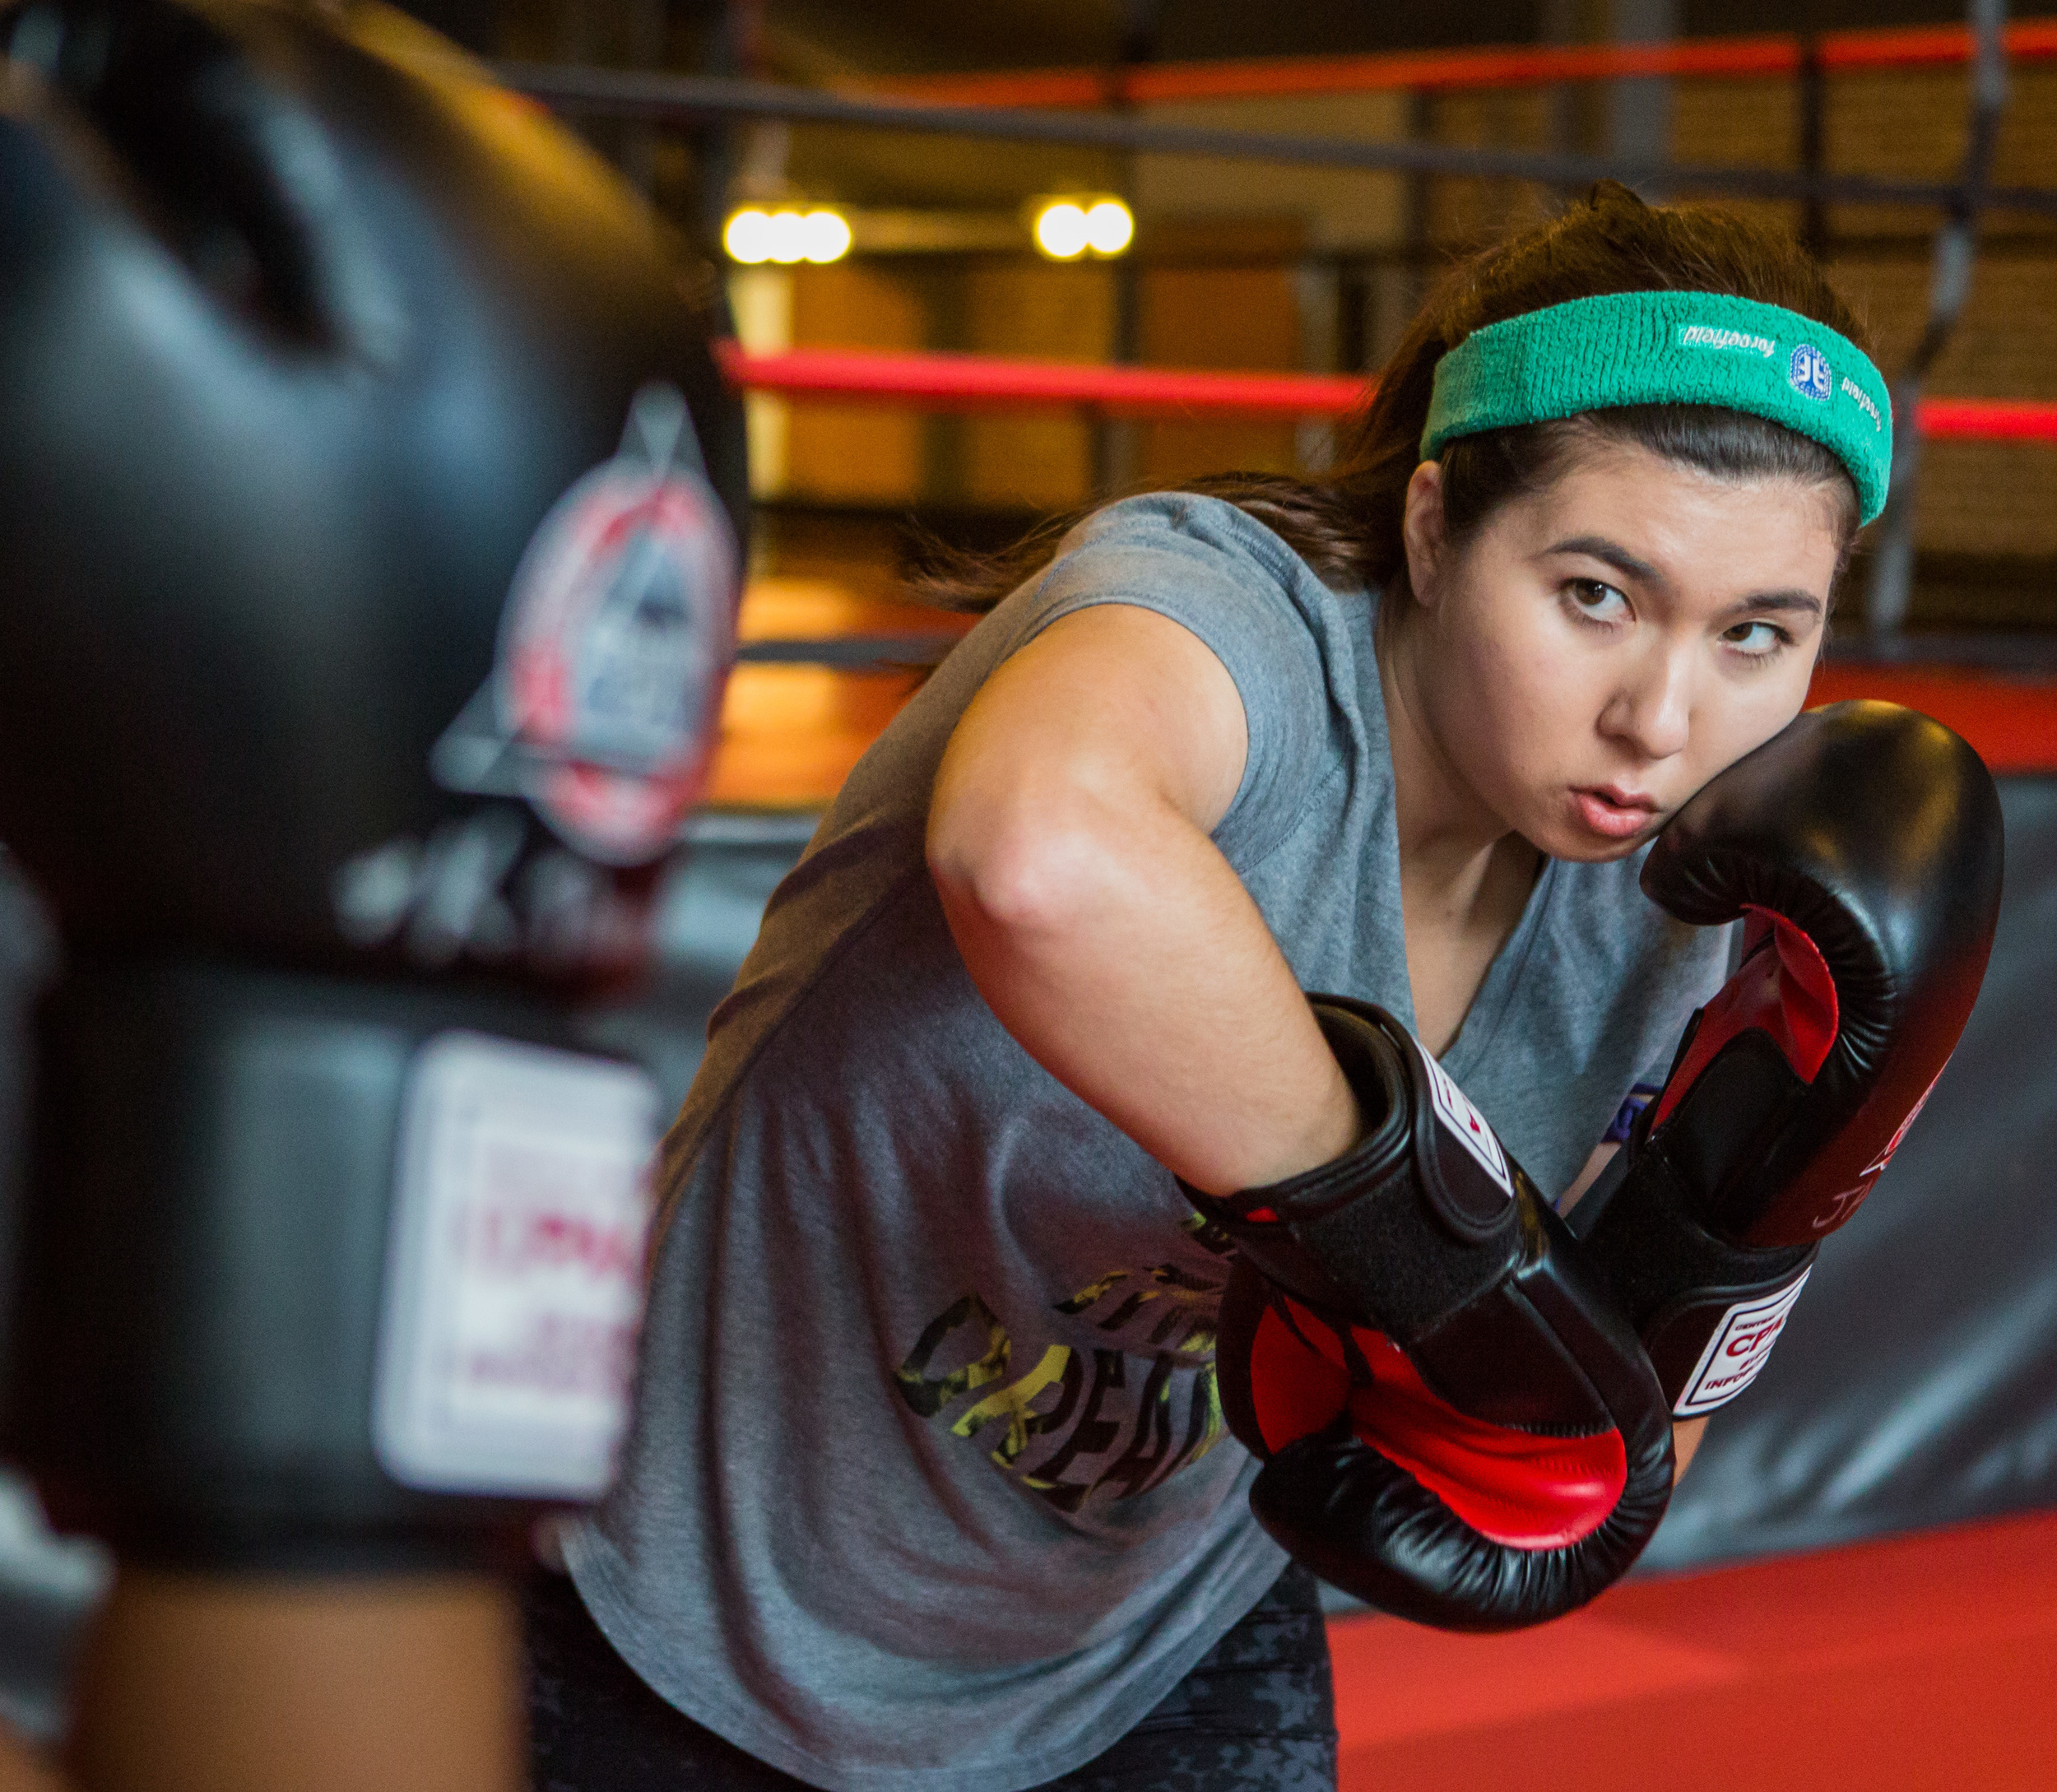 Jacqueline Demartino of State College spars with Kristen Thomas during women's only sparring day at Central PA Mixed Martial Arts in State College on Sunday, July 31, 2016.